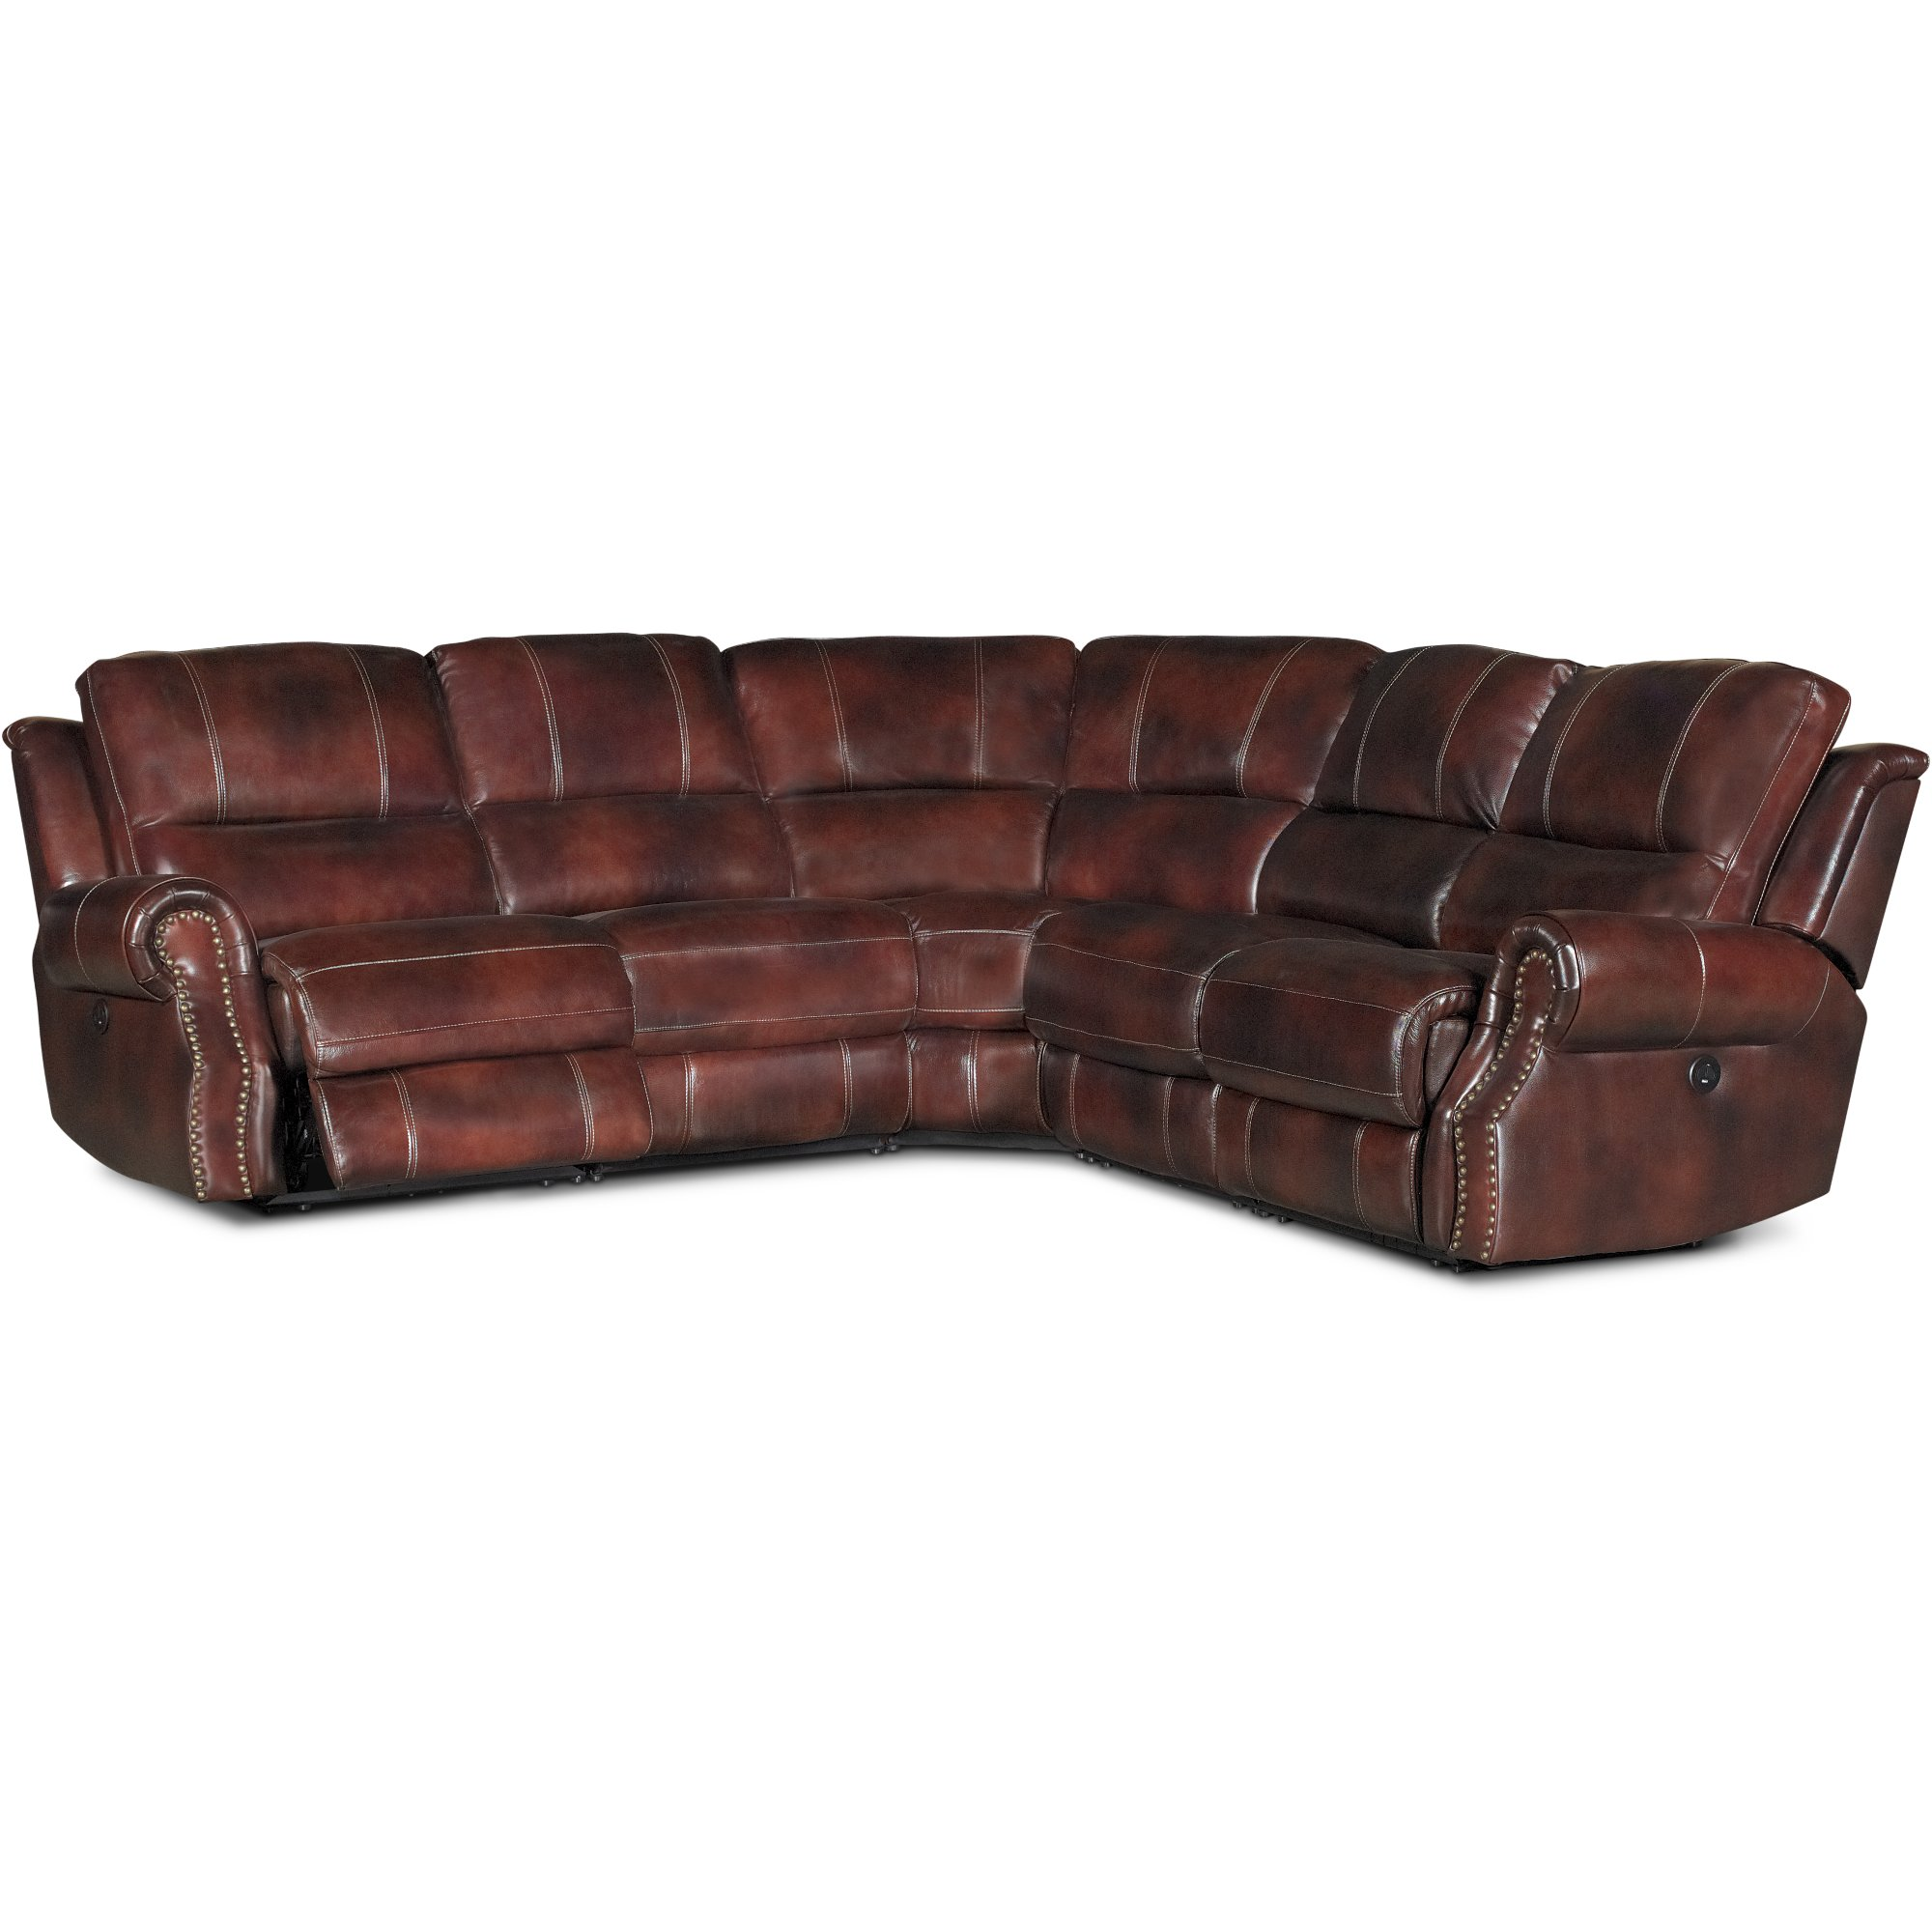 Auburn Leather Match 5 Piece Power Reclining Sectional